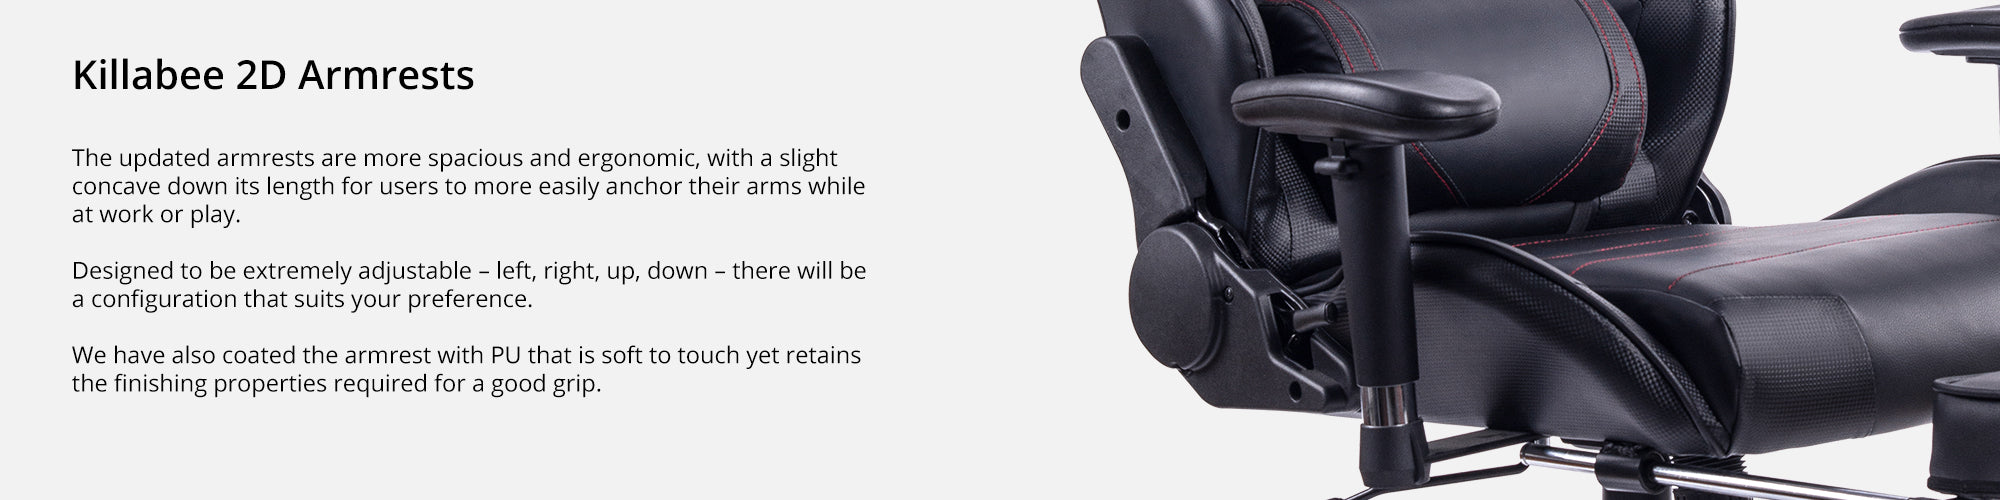 Features (killabee 2D armrests)